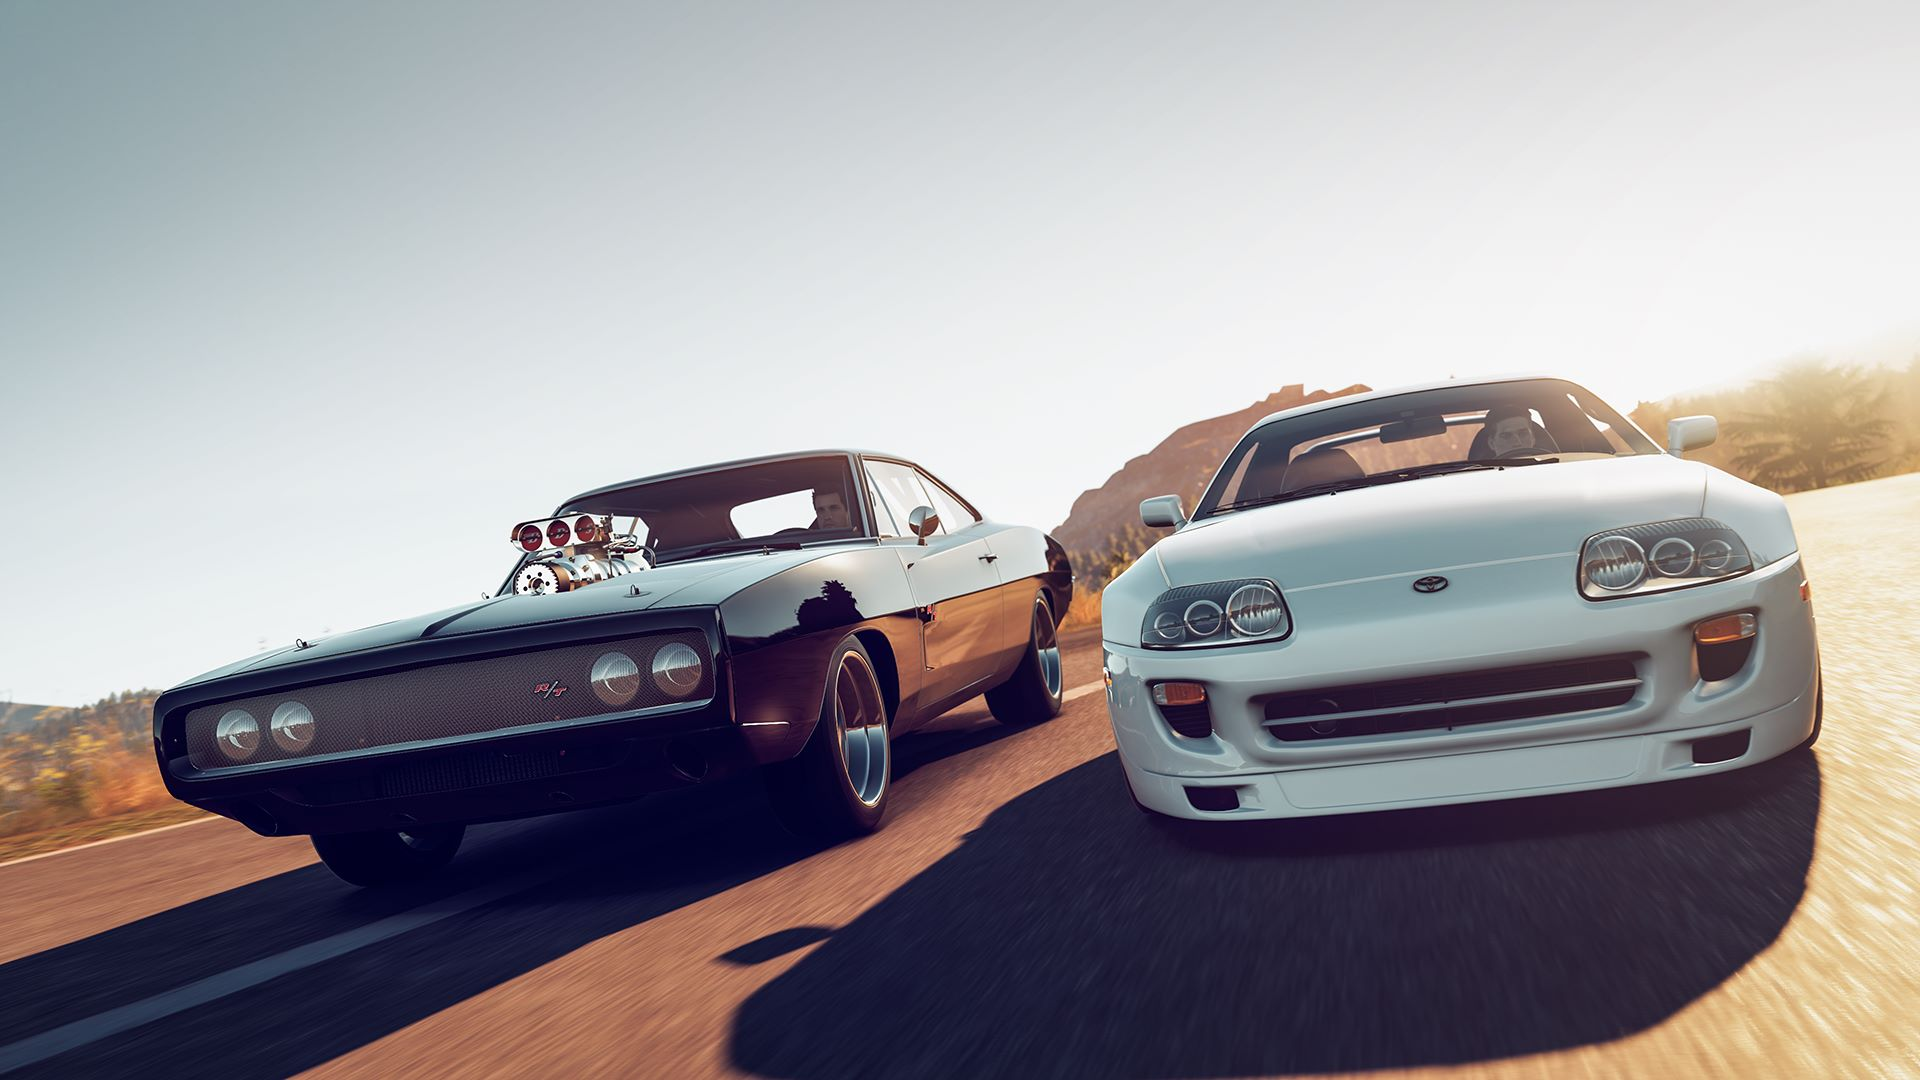 Toyota Supra Edition On The App Store: Forza Horizon 2 1998 Toyota Supra Fast & Furious Edition